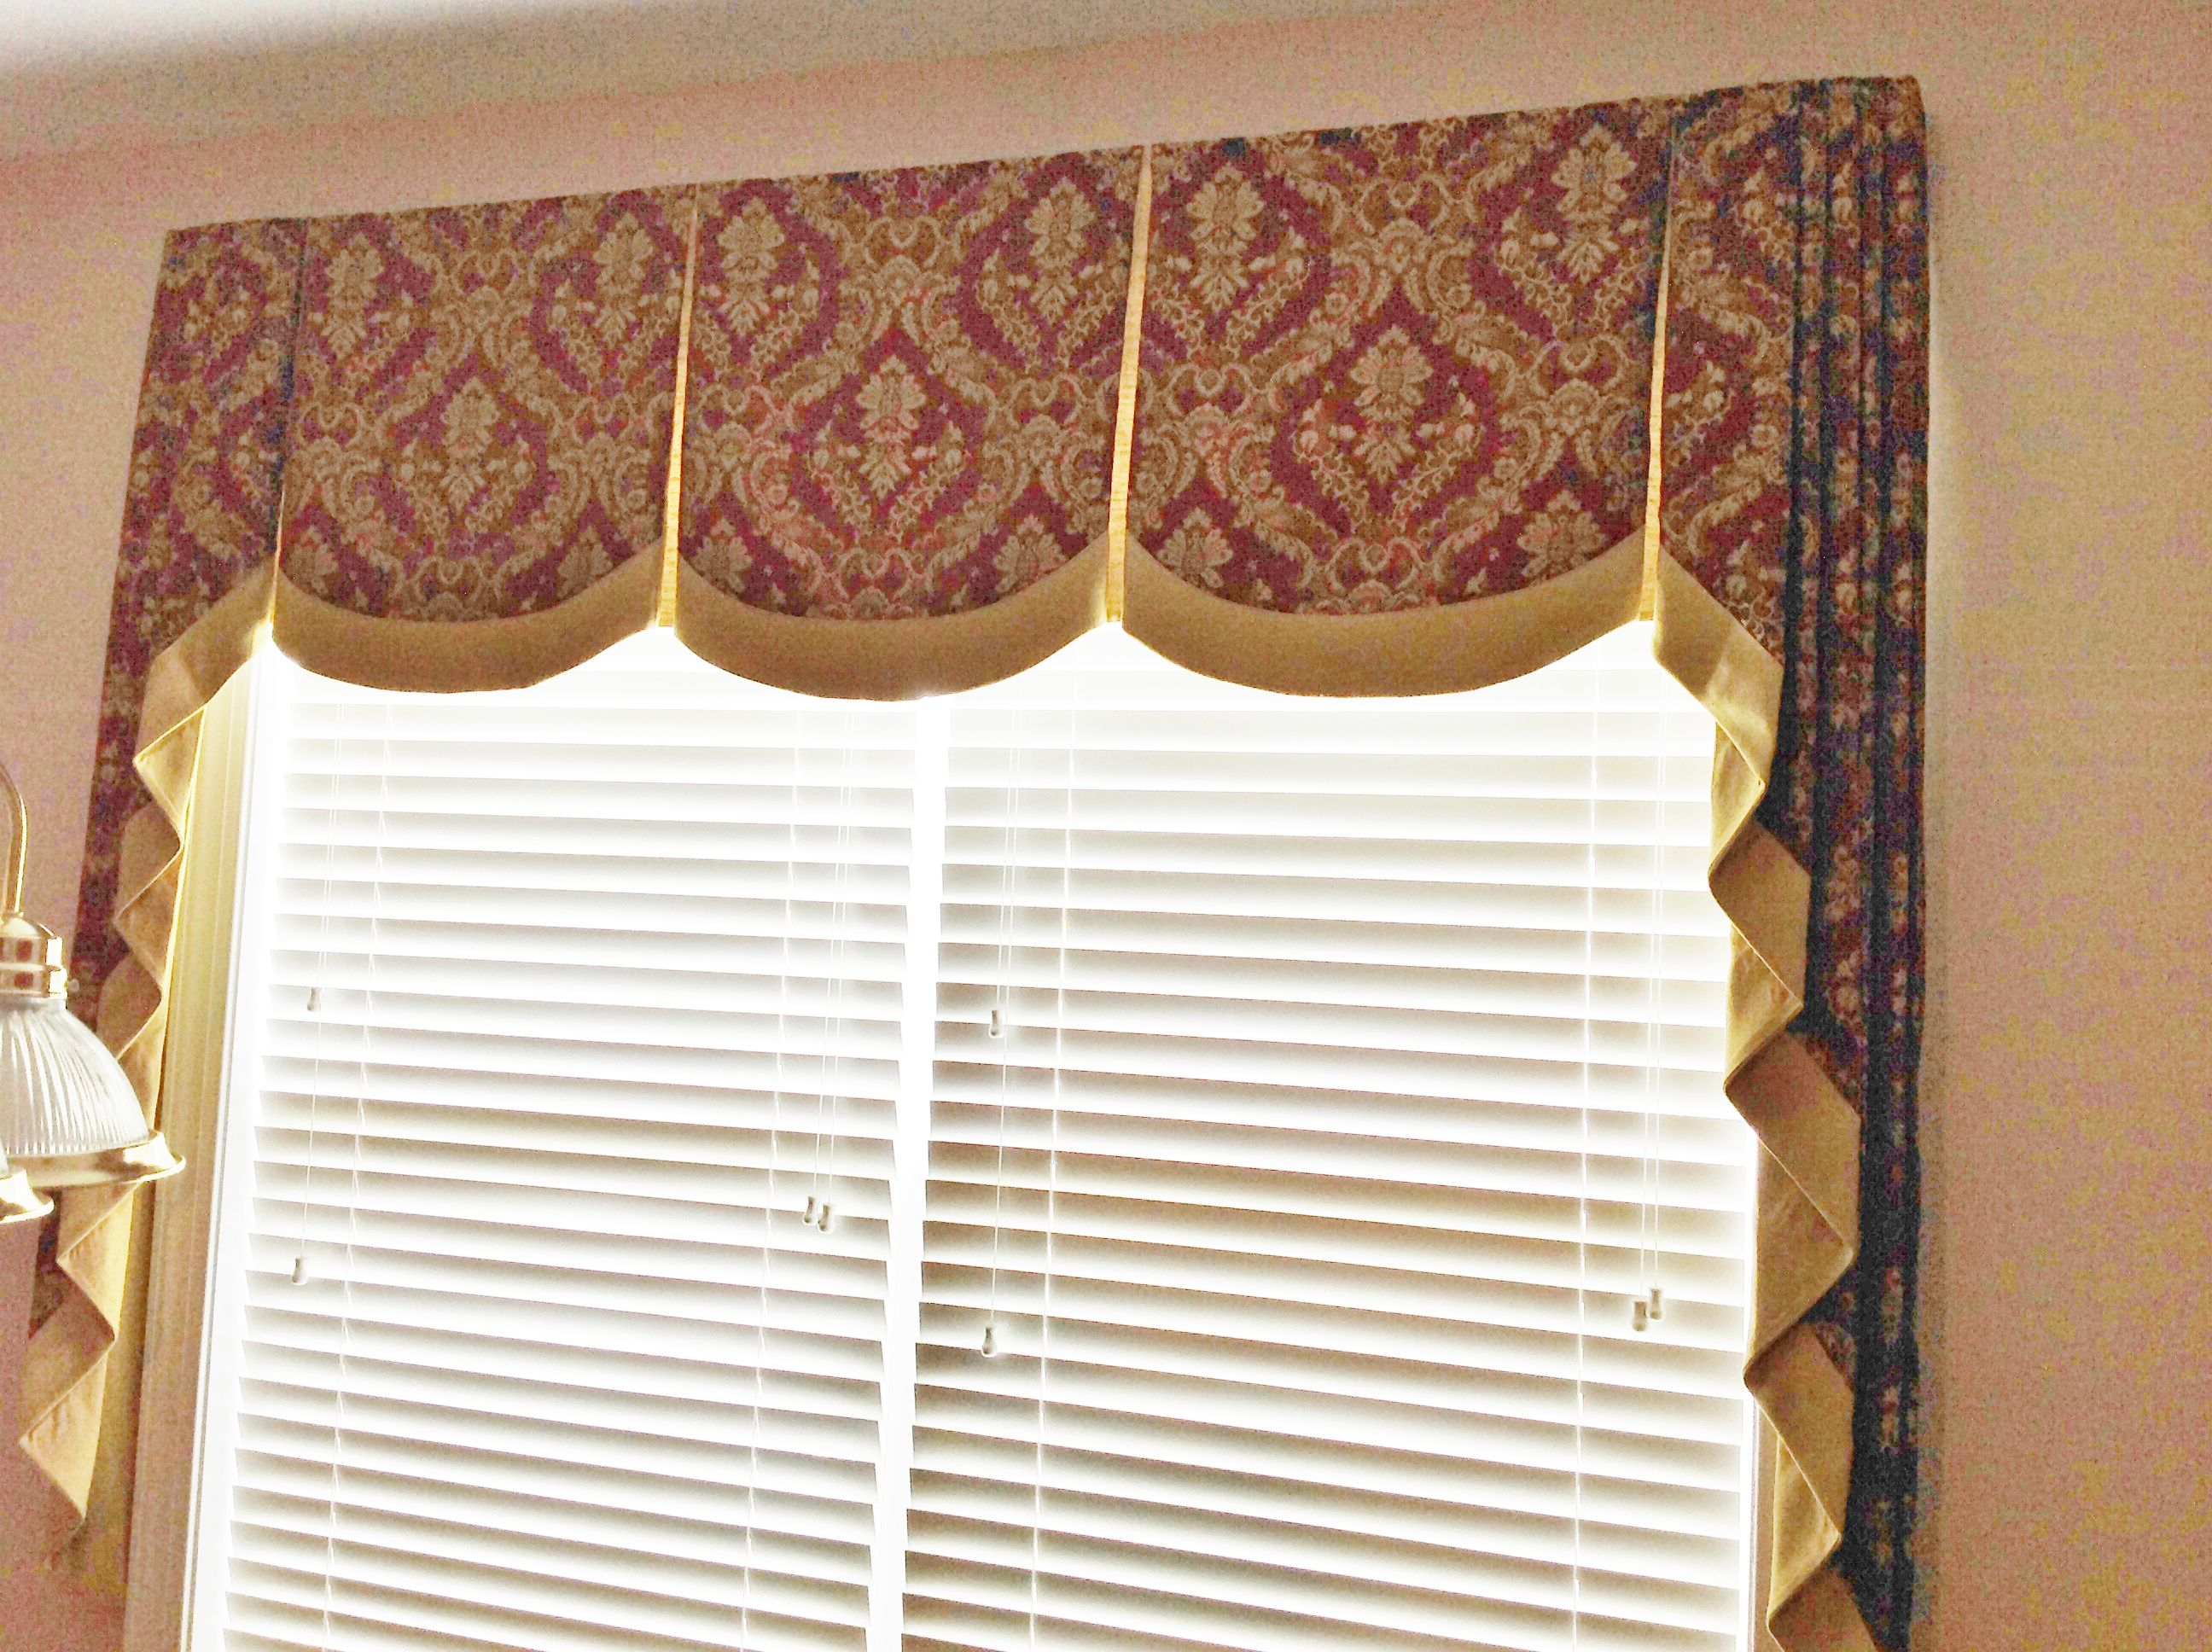 tag heads cornices and with oak custom treatment window illinois valances nail valance brook for boards cornice